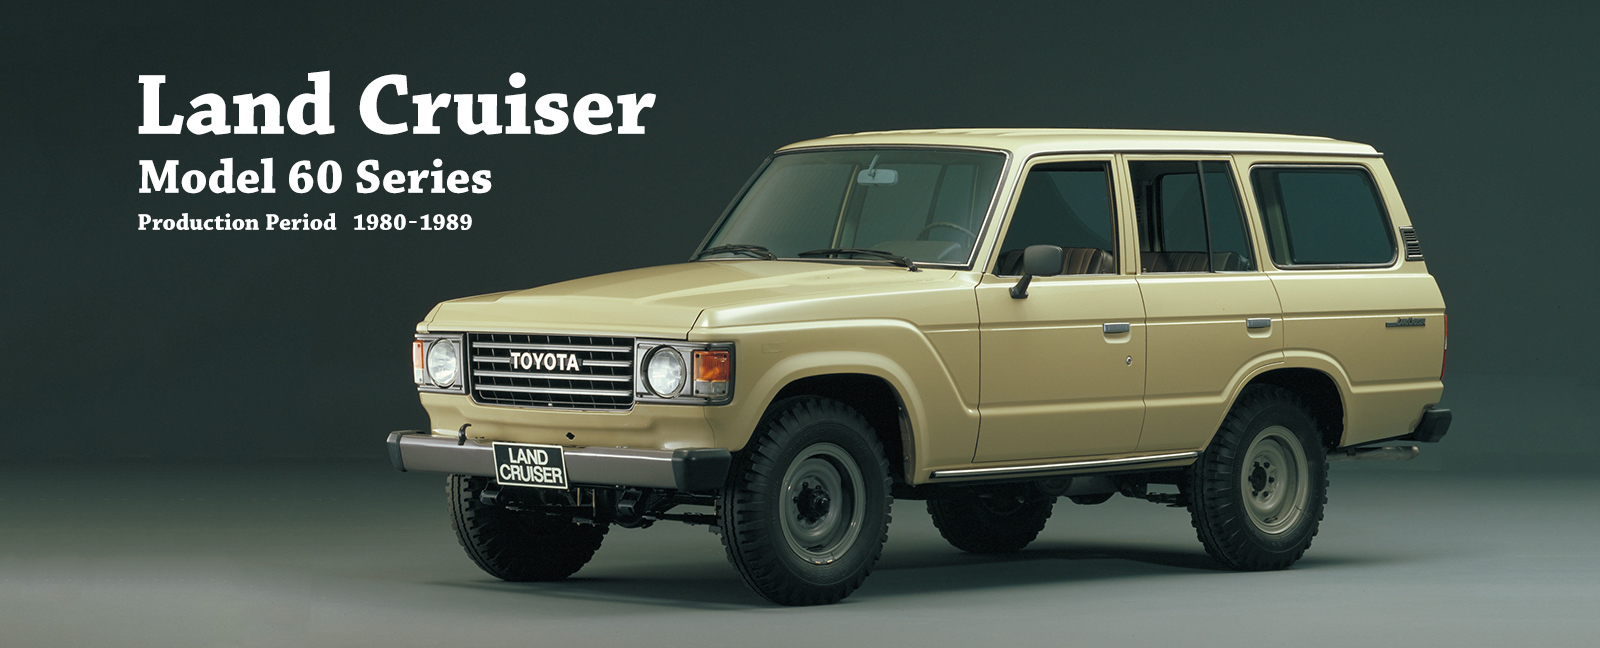 Vehicle Heritage, Land Cruiser, Model 60 Series